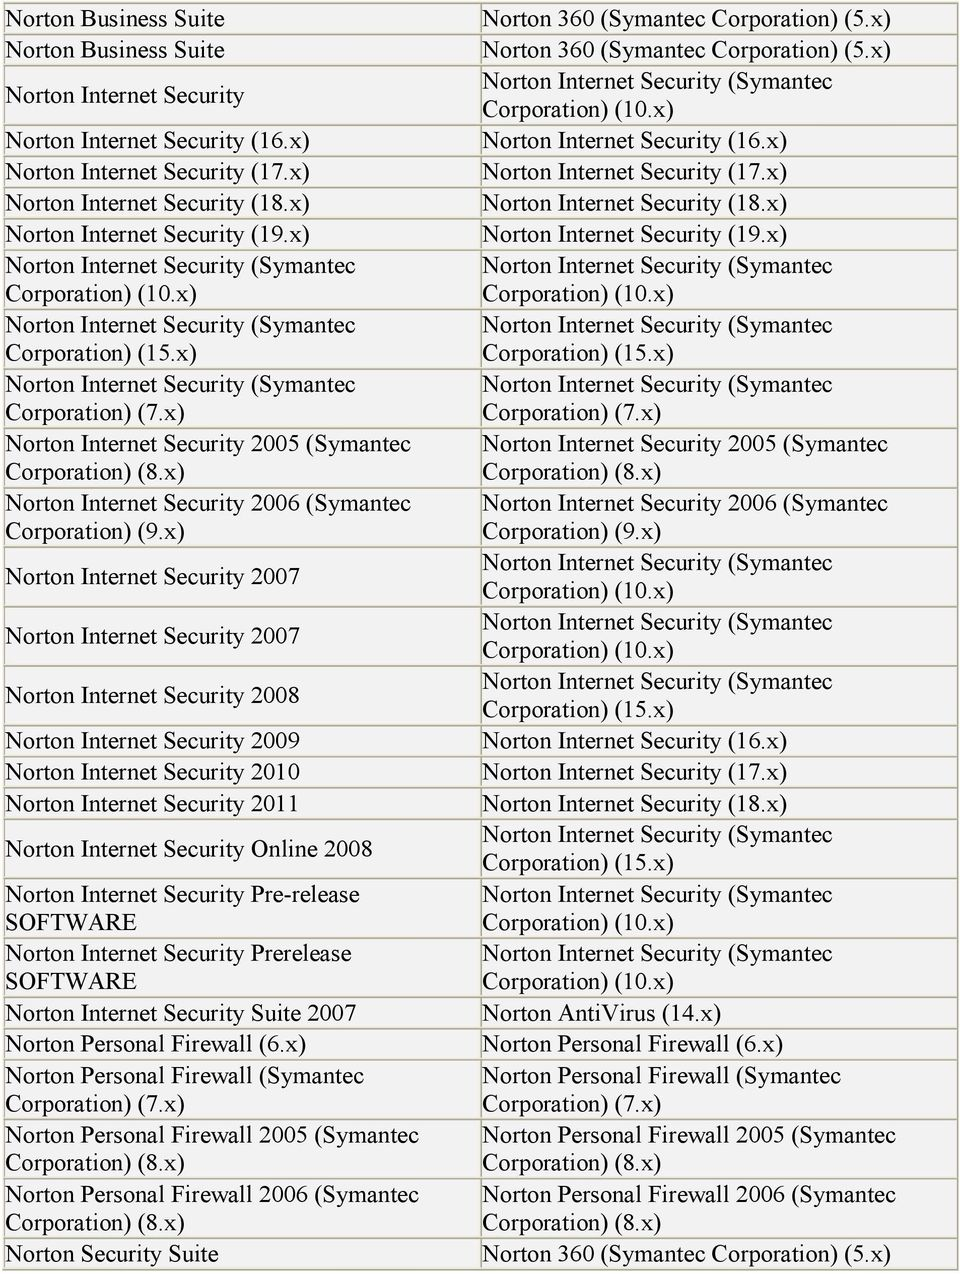 x) Norton Internet Security (Symantec Corporation) Norton Internet Security 2005 (Symantec Corporation) (8.x) Norton Internet Security 2006 (Symantec Corporation) (9.